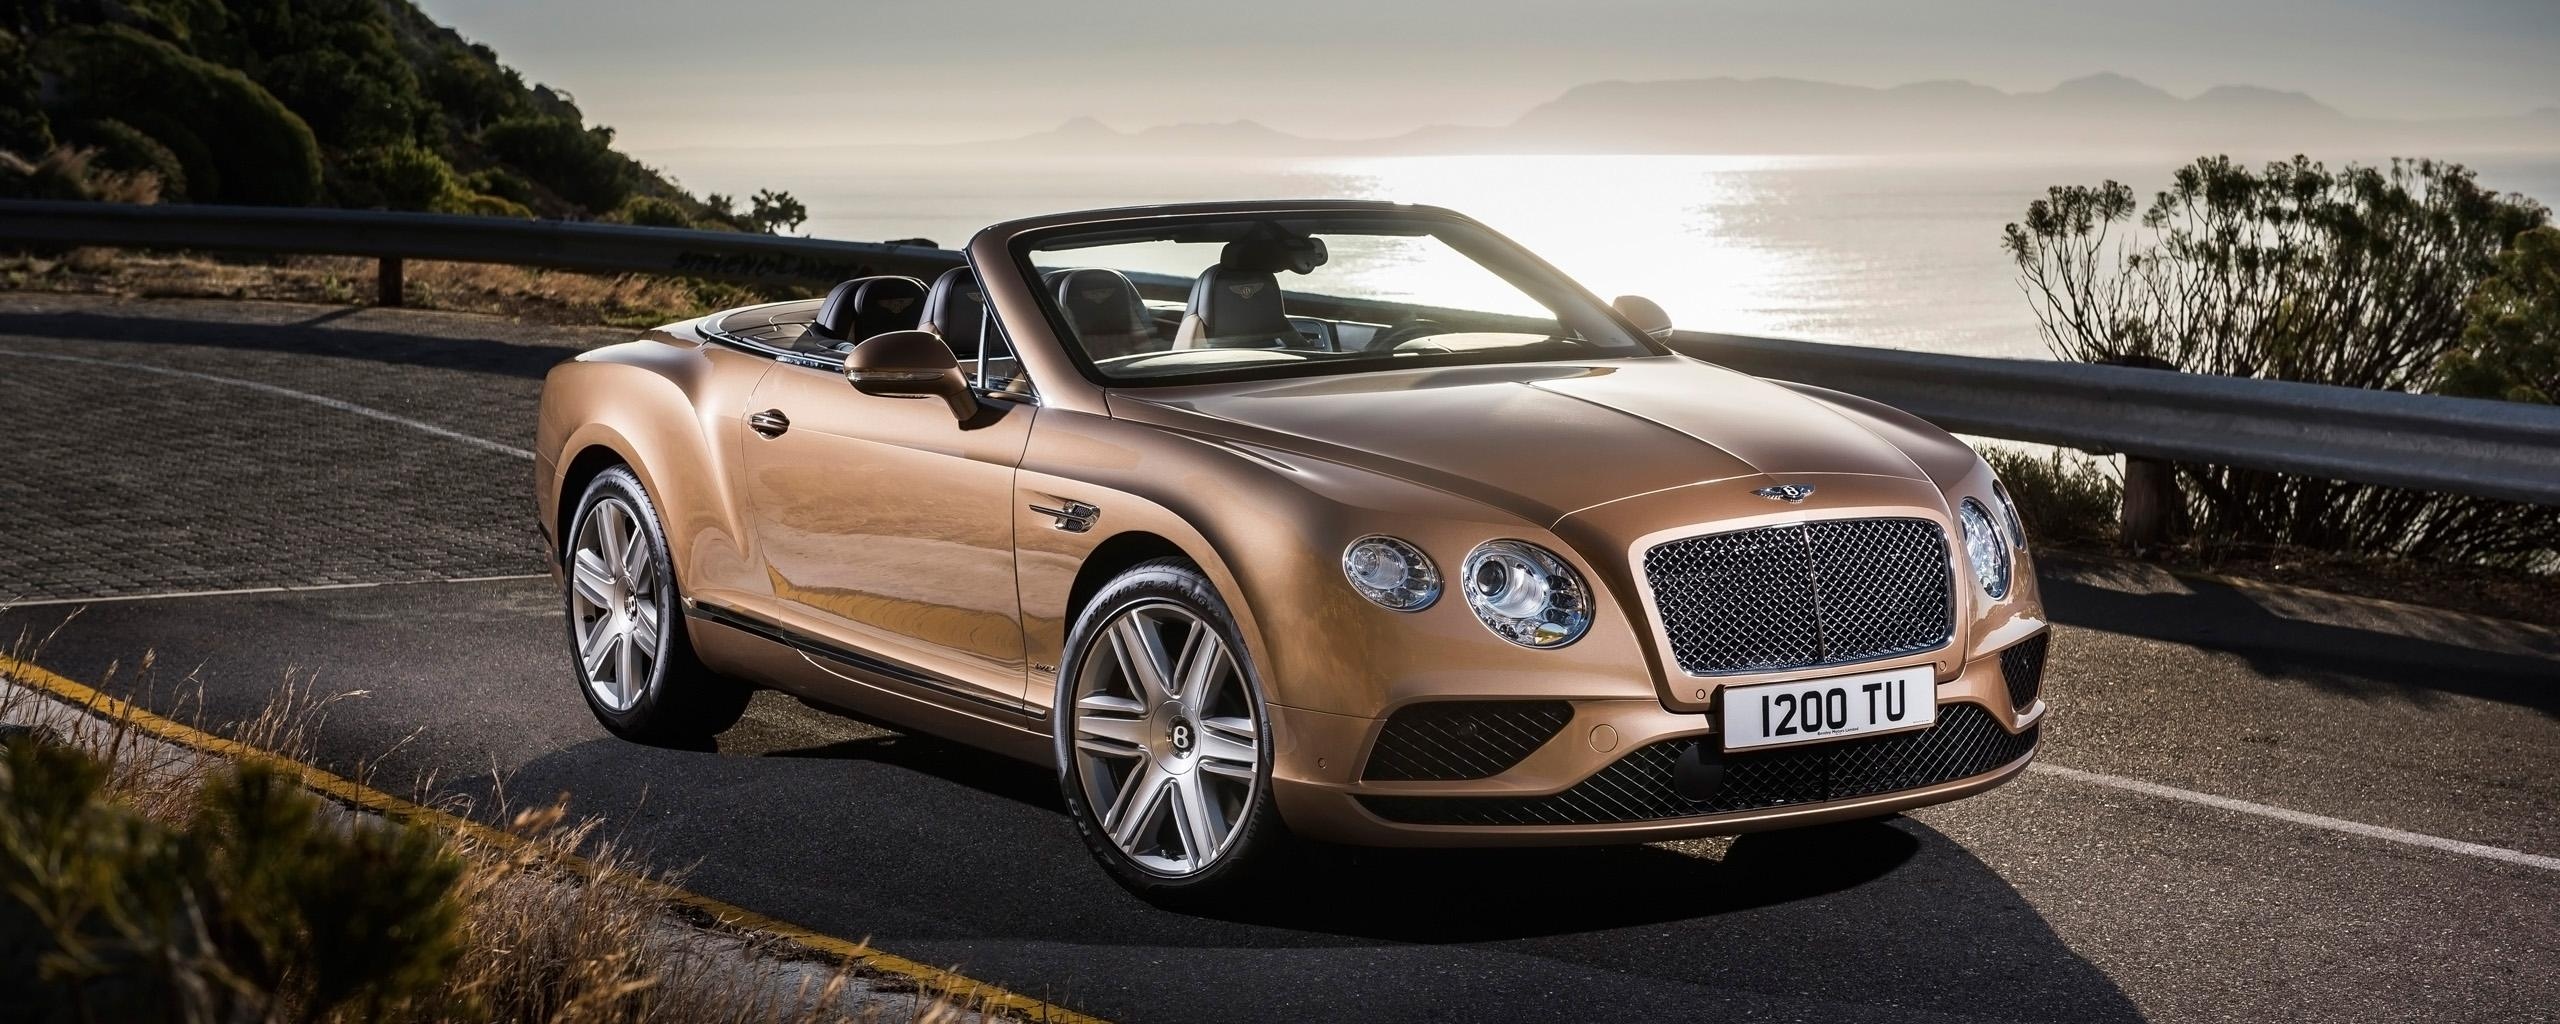 Download Wallpaper 2560x1024 Bentley continental gt convertible 2015